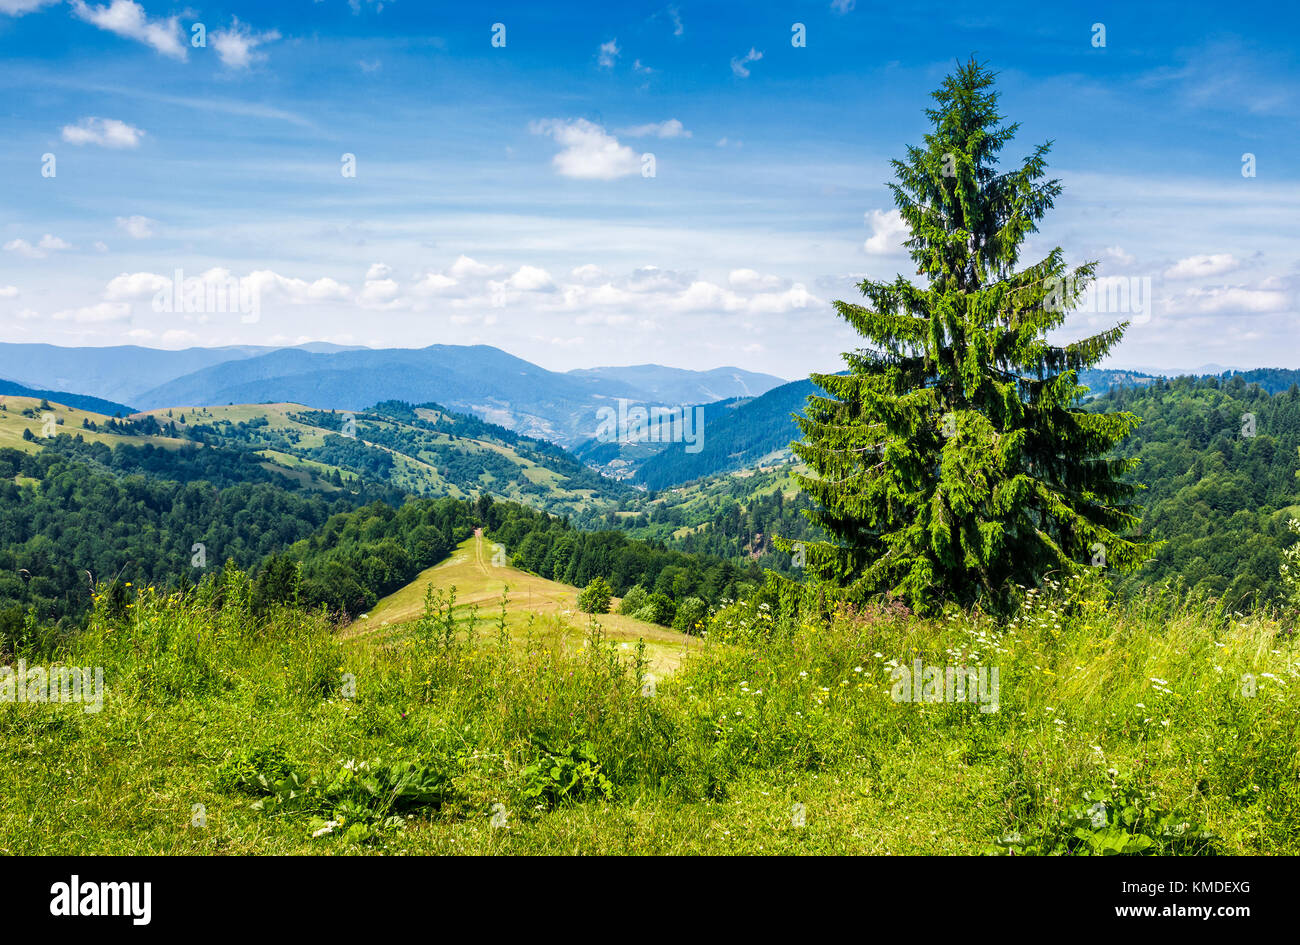 spruce tree on the edge of e hill. gorgeous summer landscape with mountain ridge in the distance - Stock Image